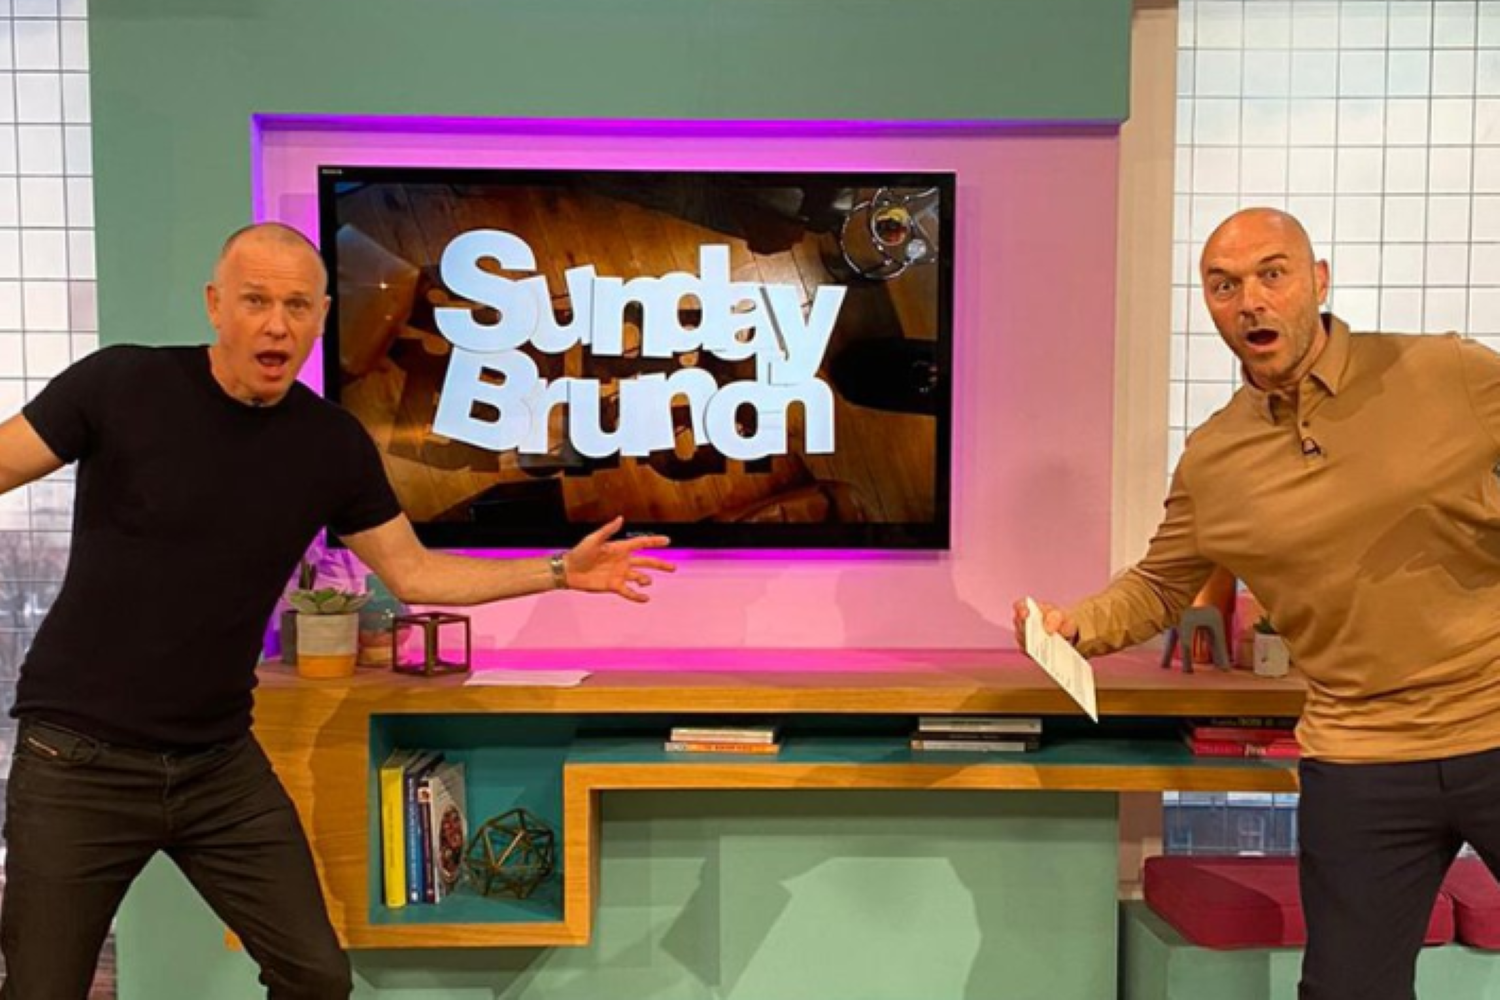 Sunday Brunch fans thrilled as show returns to the studio